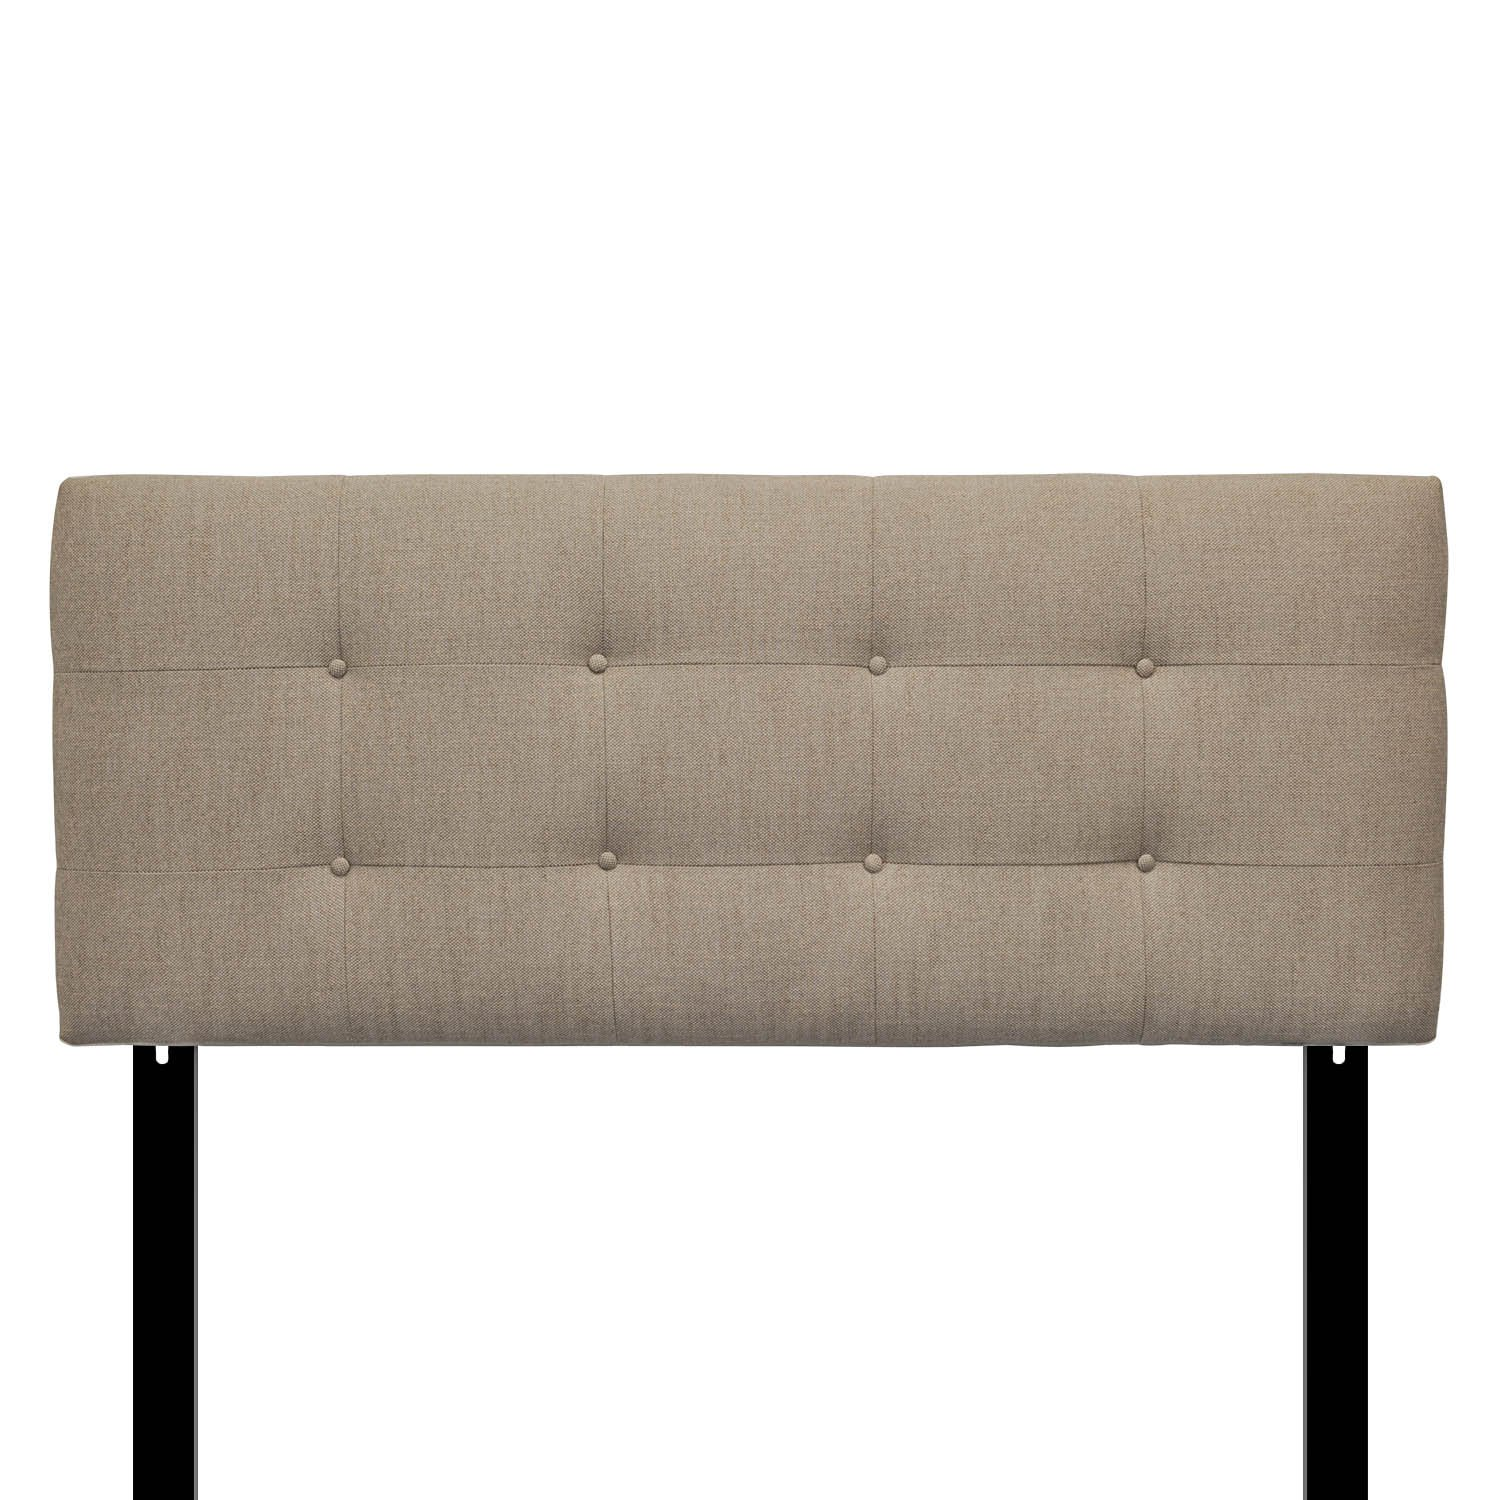 Sole Designs Ali Collection Padded Adjustable California King Sized Upholstered Bedroom Headboard with 8 Button Tufting, Arcadia, Peble Finish by Sole Designs